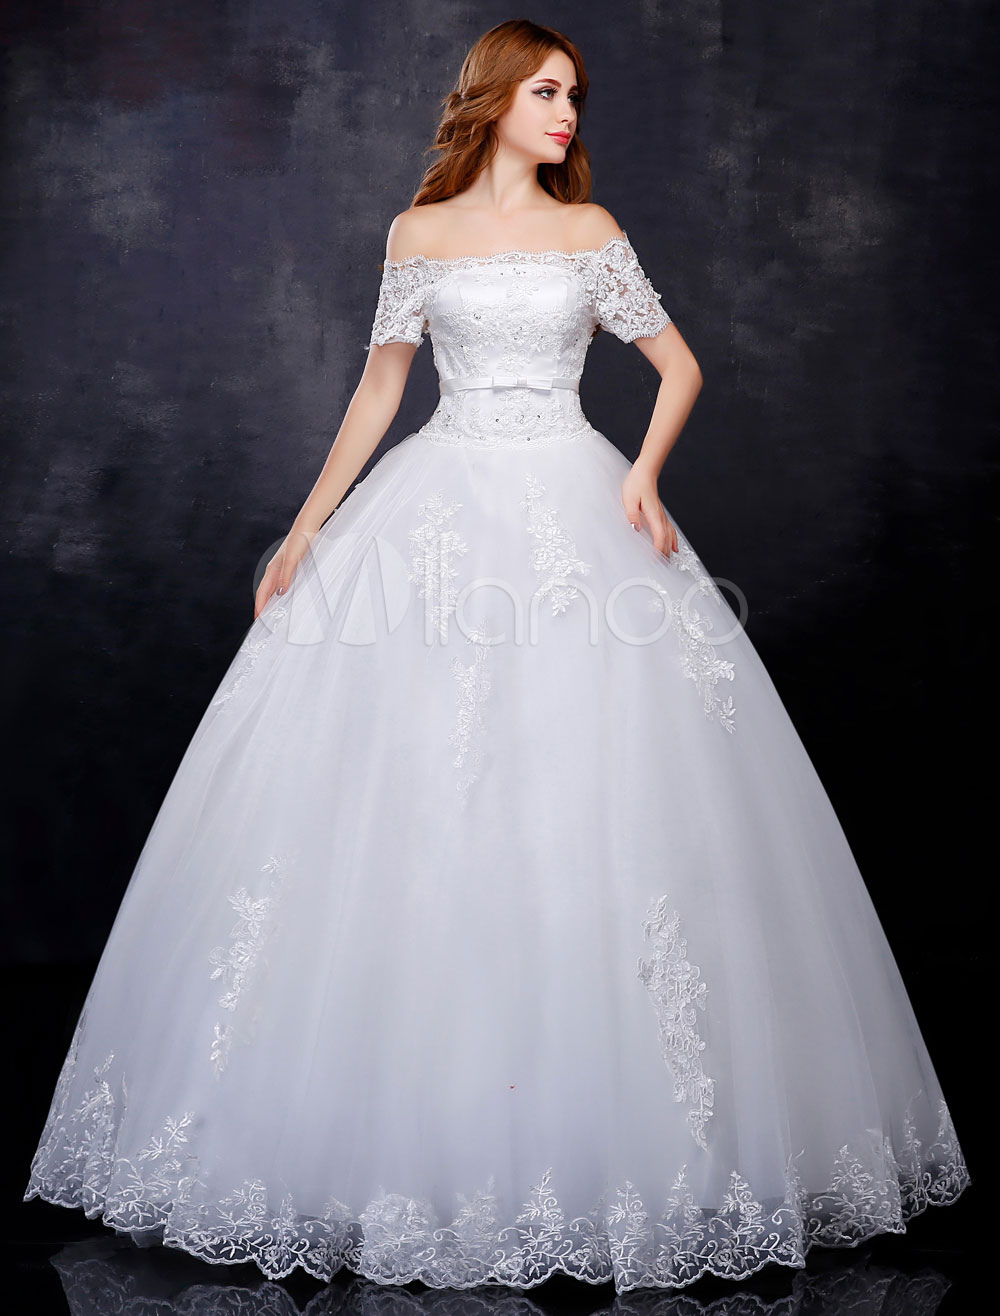 Buy Princess Ball Gown Wedding Dresses Off The Shoulder Bridal Gown Lace Applique Short Sleeve Ivory Floor Length Bridal Dress for $145.19 in Milanoo store